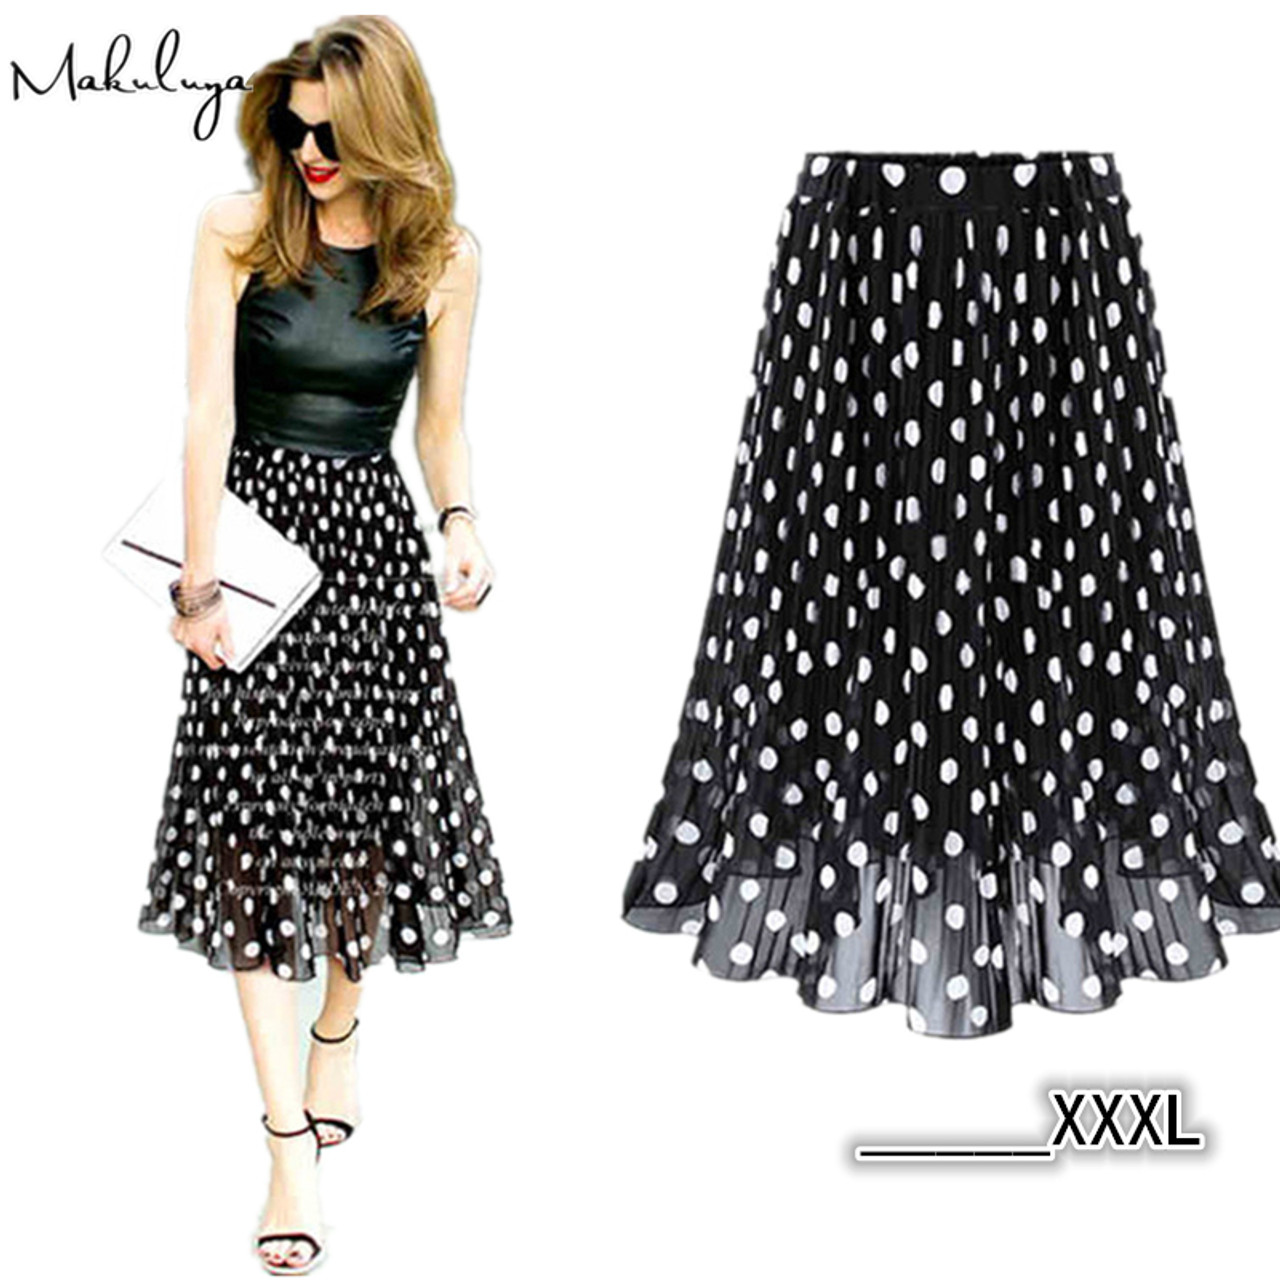 ab8bd370a8 ... Makuluya 2017 Summer Spring Women Chiffon Polka Dot Skirt Female Black  dots Elastic Waist Pleated Skirt ...